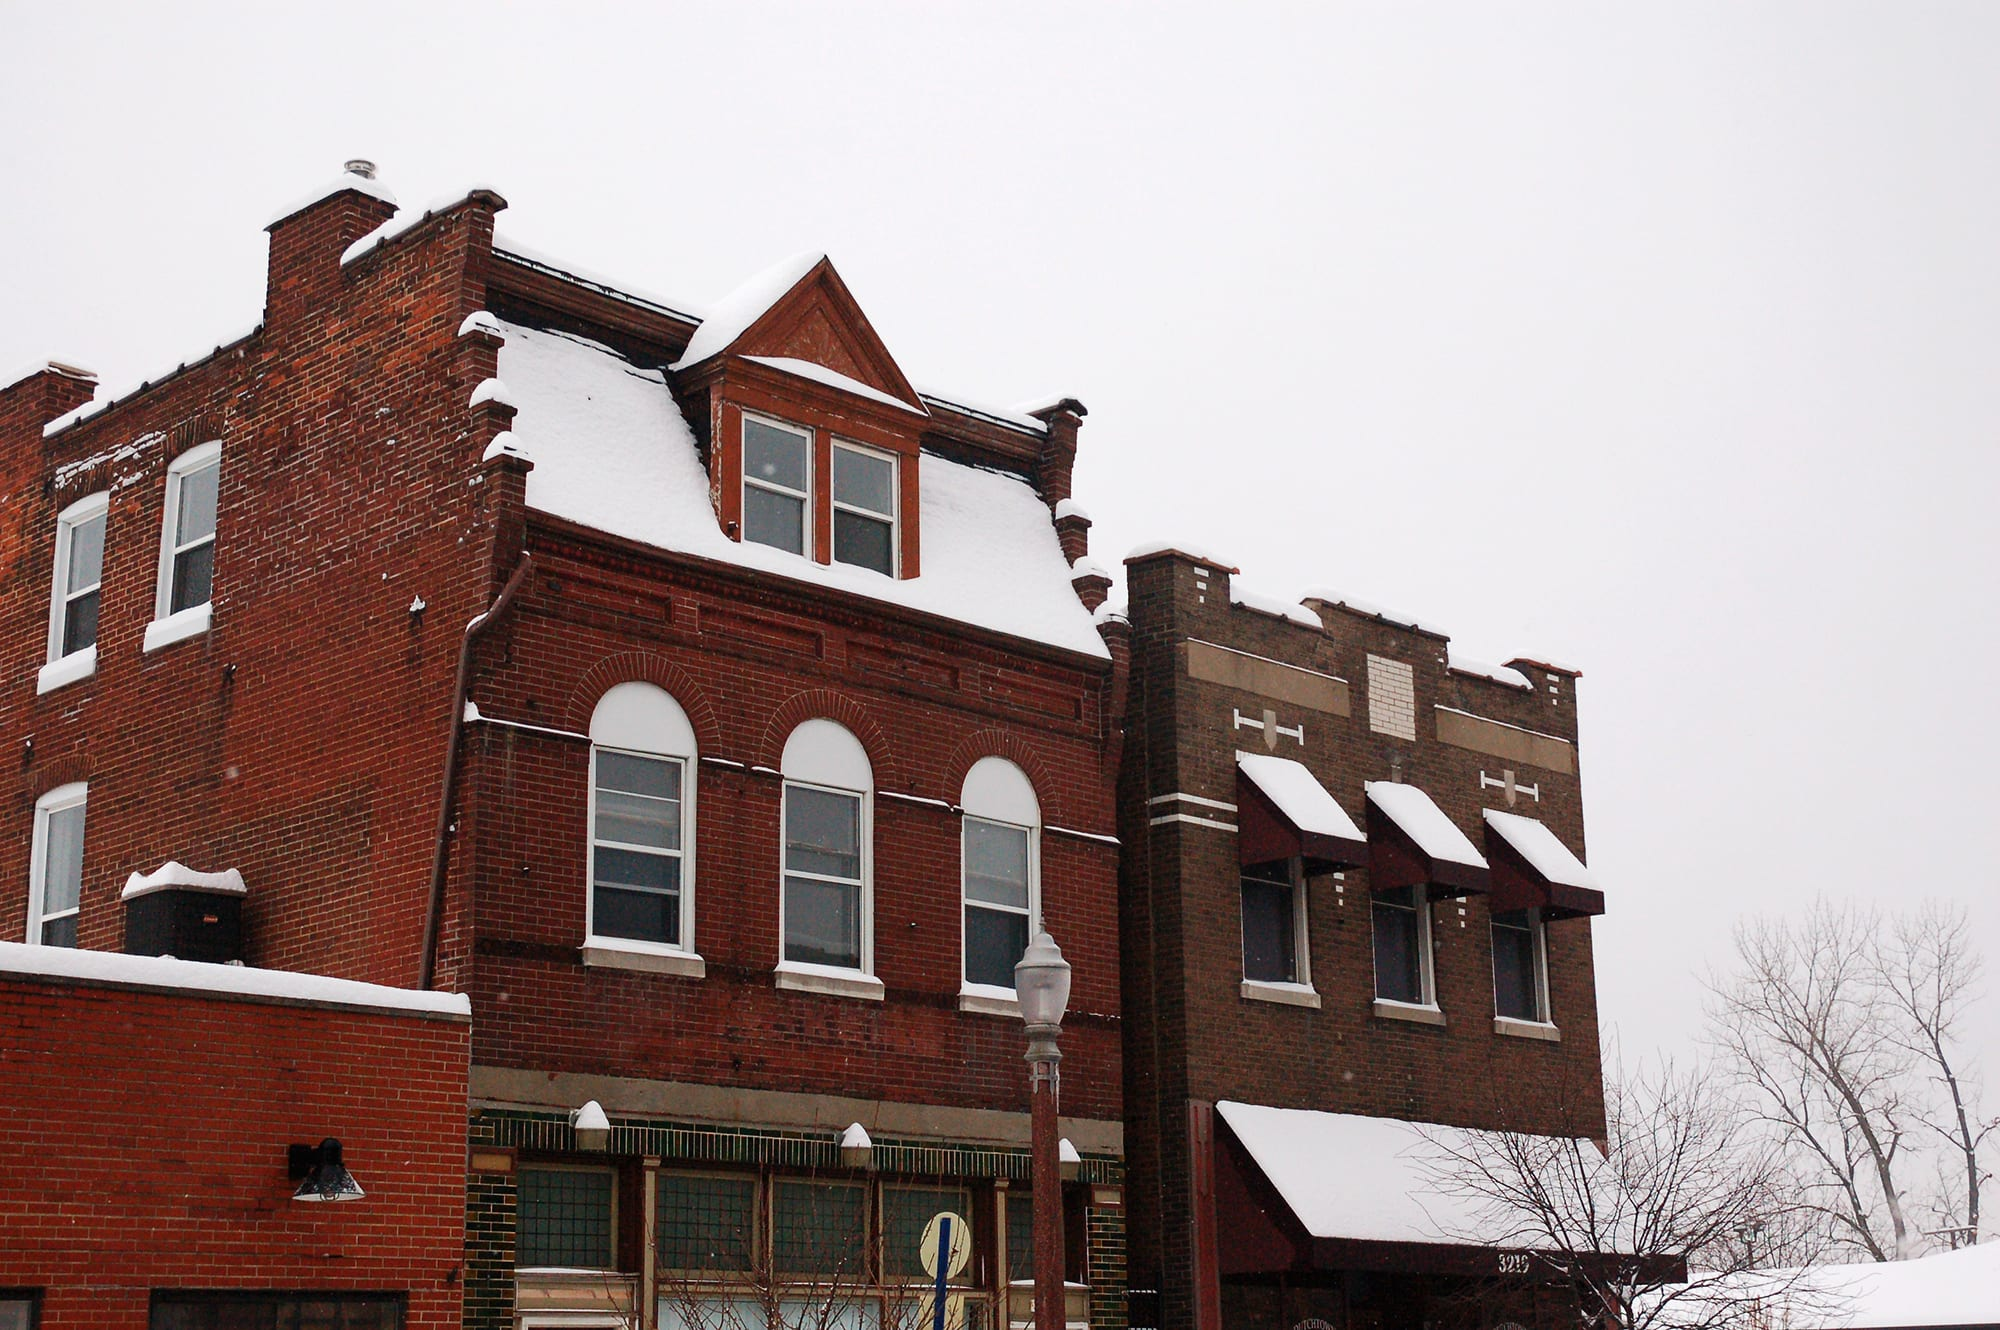 Buildings on Meramec Street in the snow.